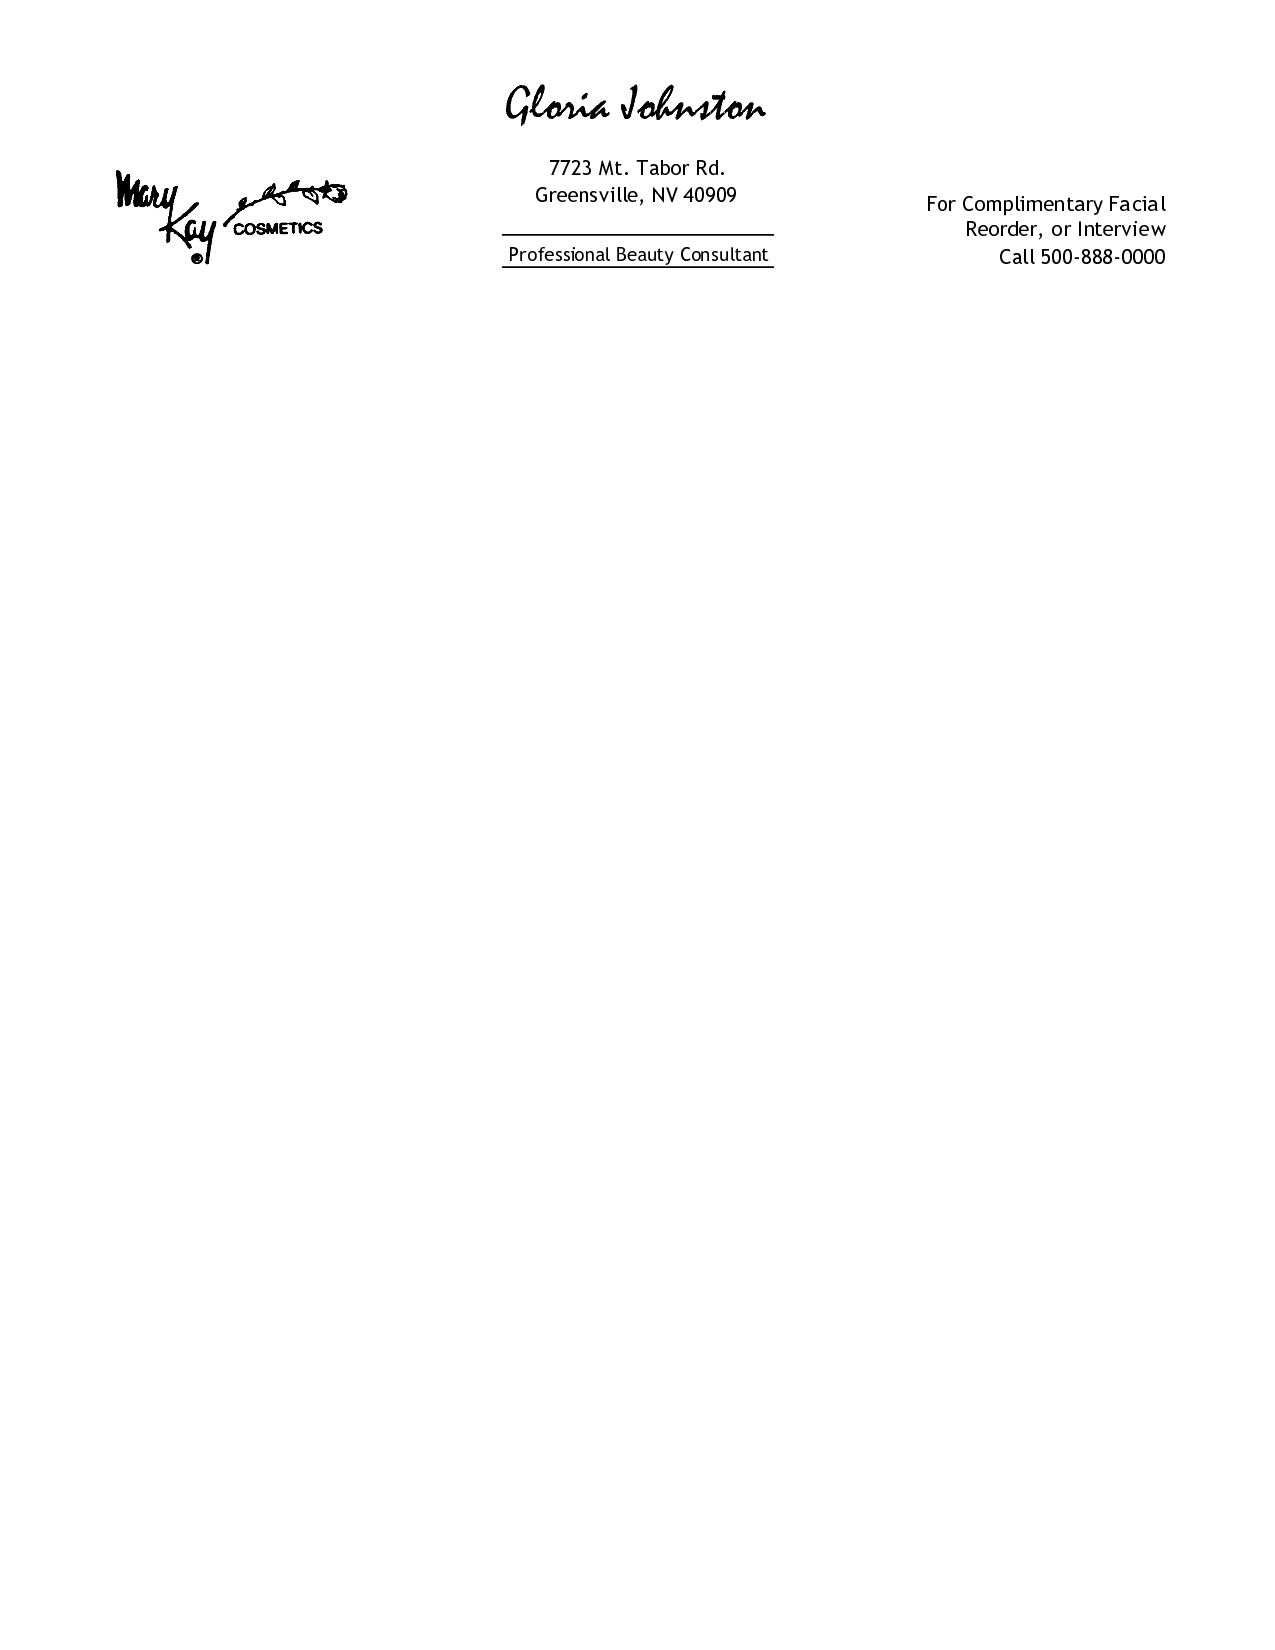 Superior [ Doc Free Personal Letterhead Templates Word Sample Legal ]   Best Free  Home Design Idea U0026 Inspiration Within Free Personal Letterhead Templates Word